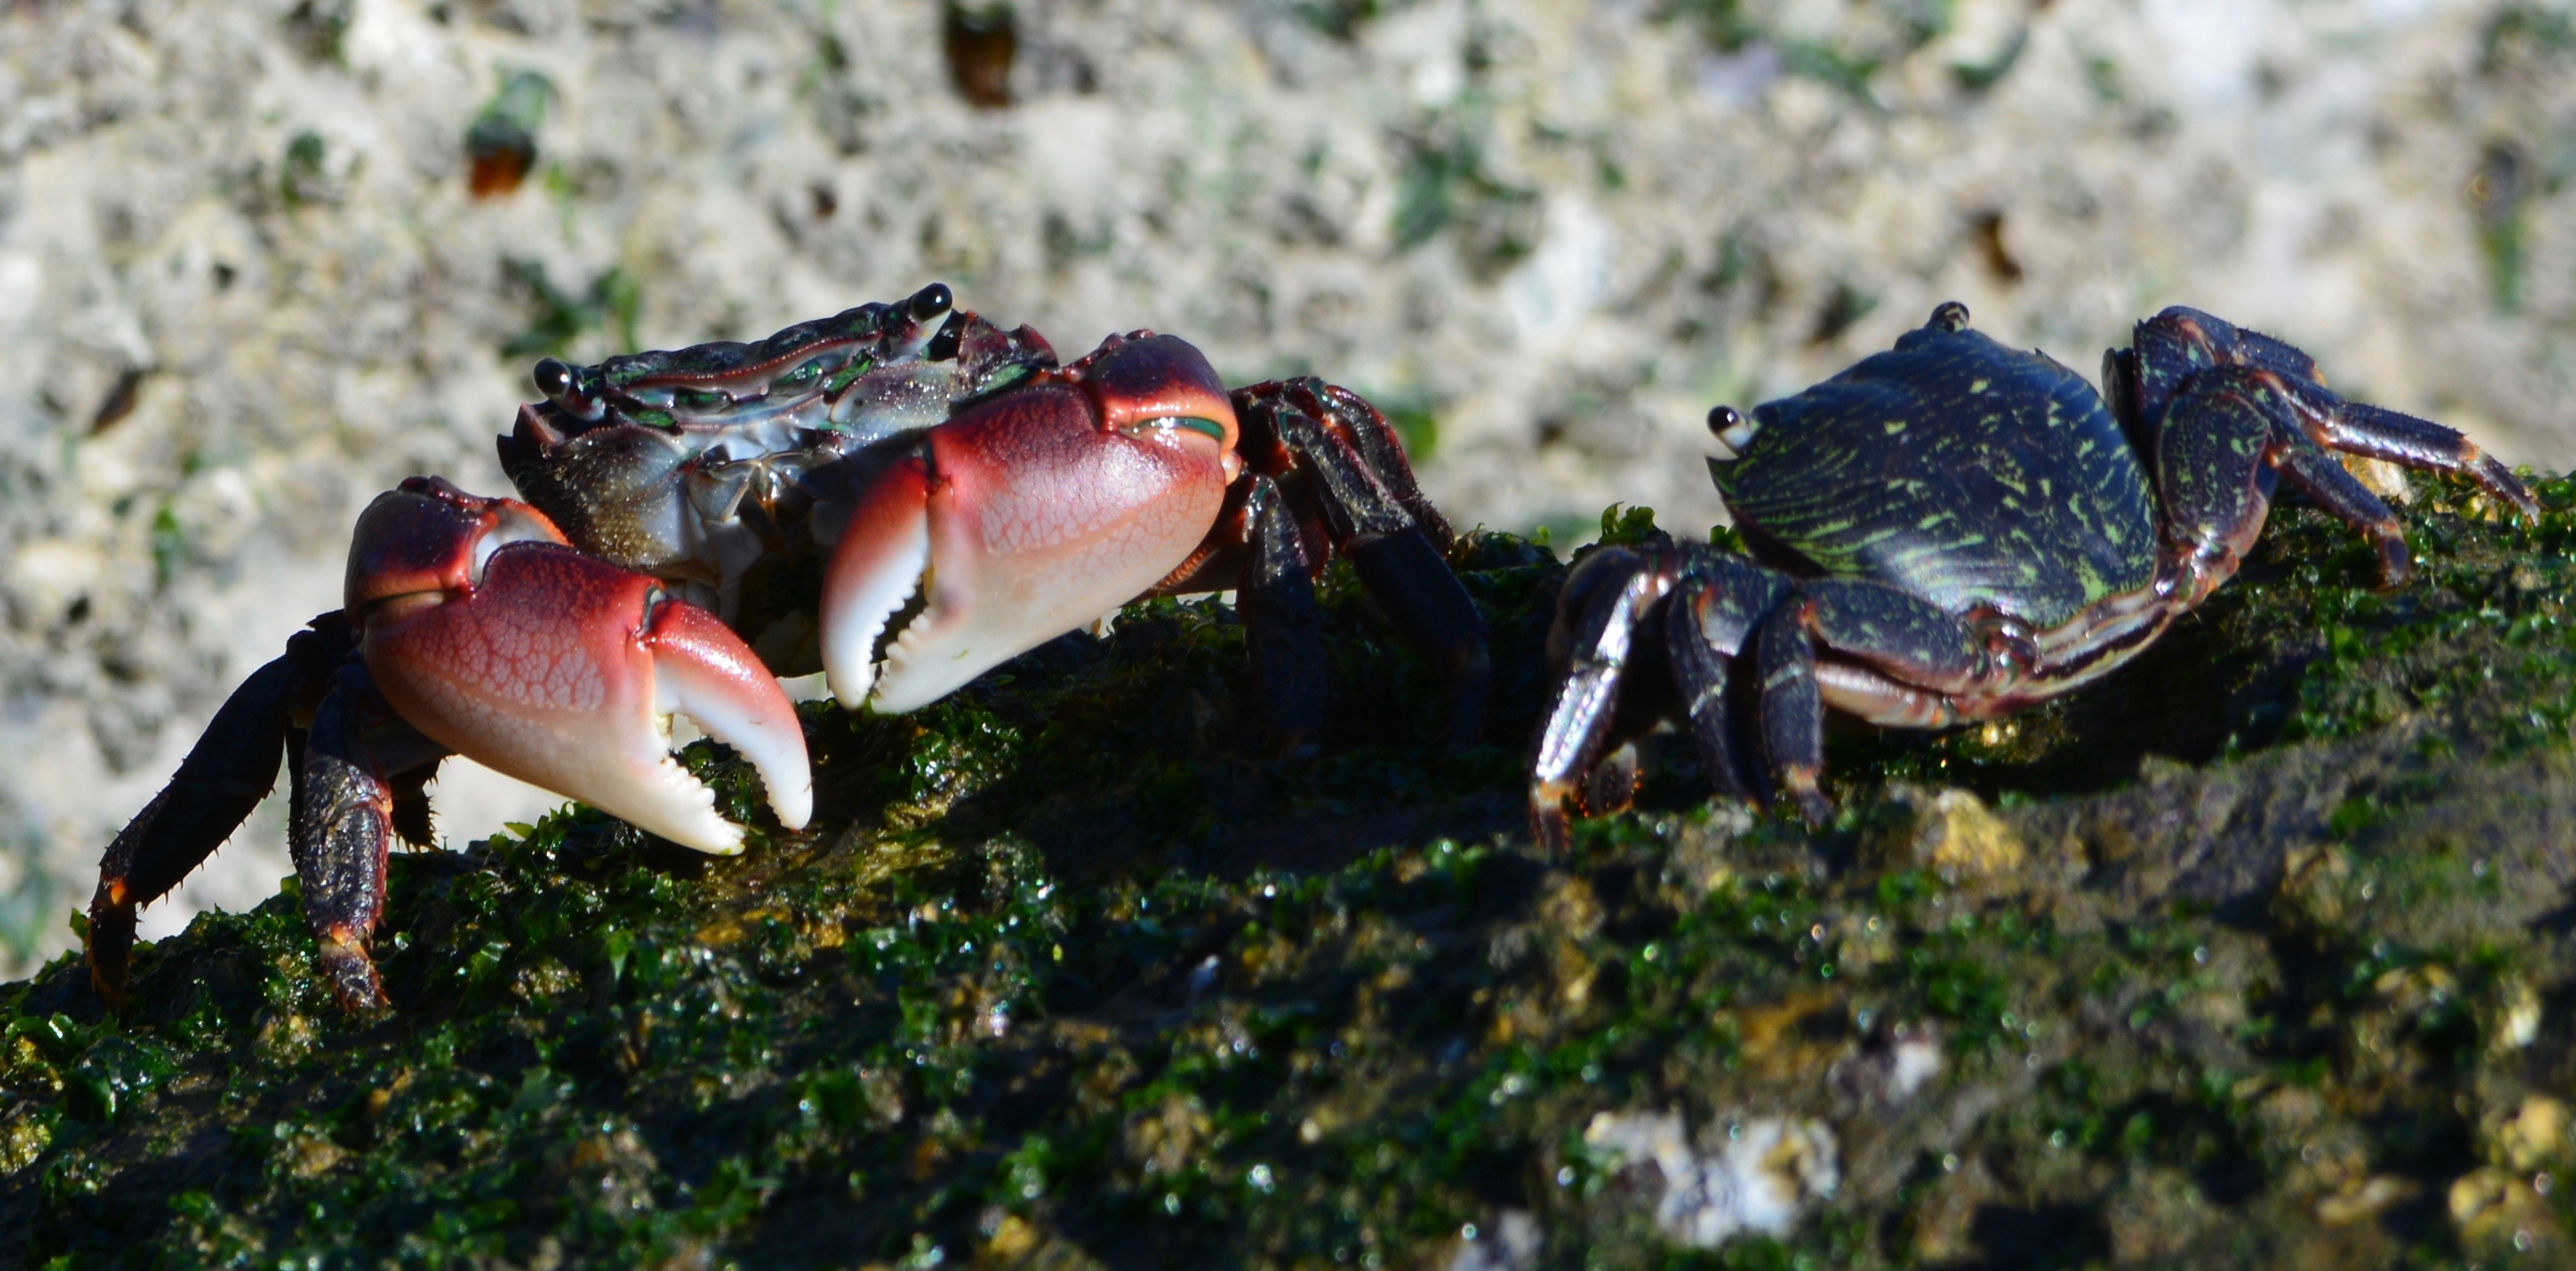 Photo by Richard Bangert  Two striped crabs eating their greens on the Crab Cove breakwater. Note their eyes, which they can raise out of their sockets. The large crab is about three inches wide.